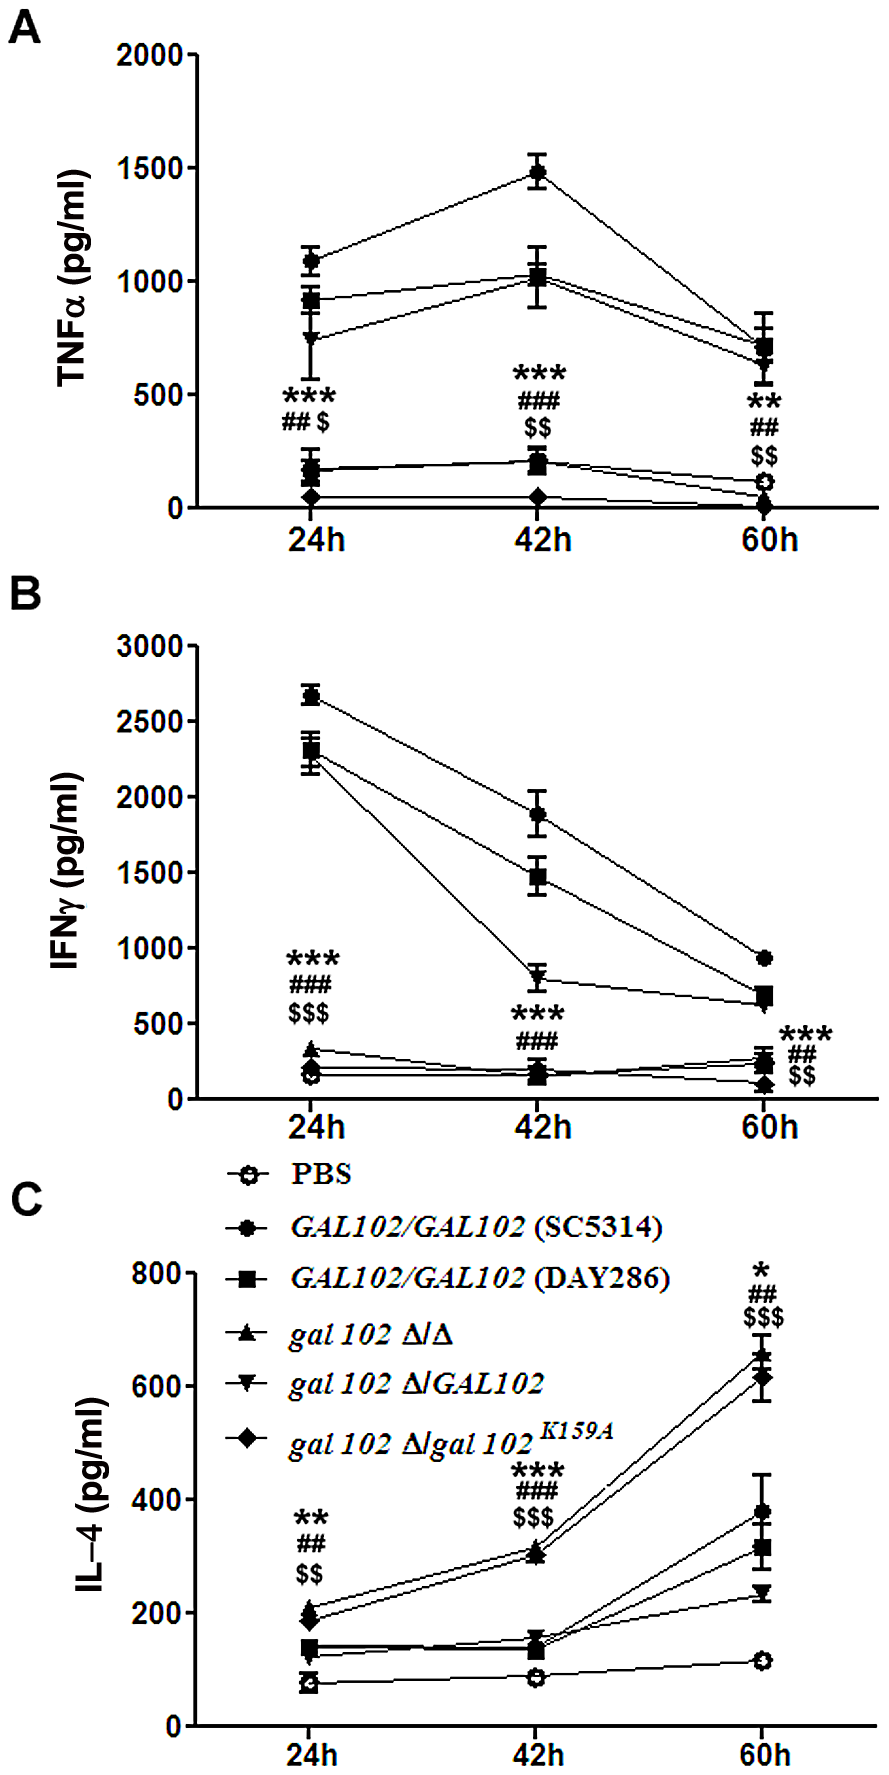 Reduced virulence is associated with the inability of <i>gal102Δ/Δ</i> to elicit pro-inflammatory cytokine response in the host.